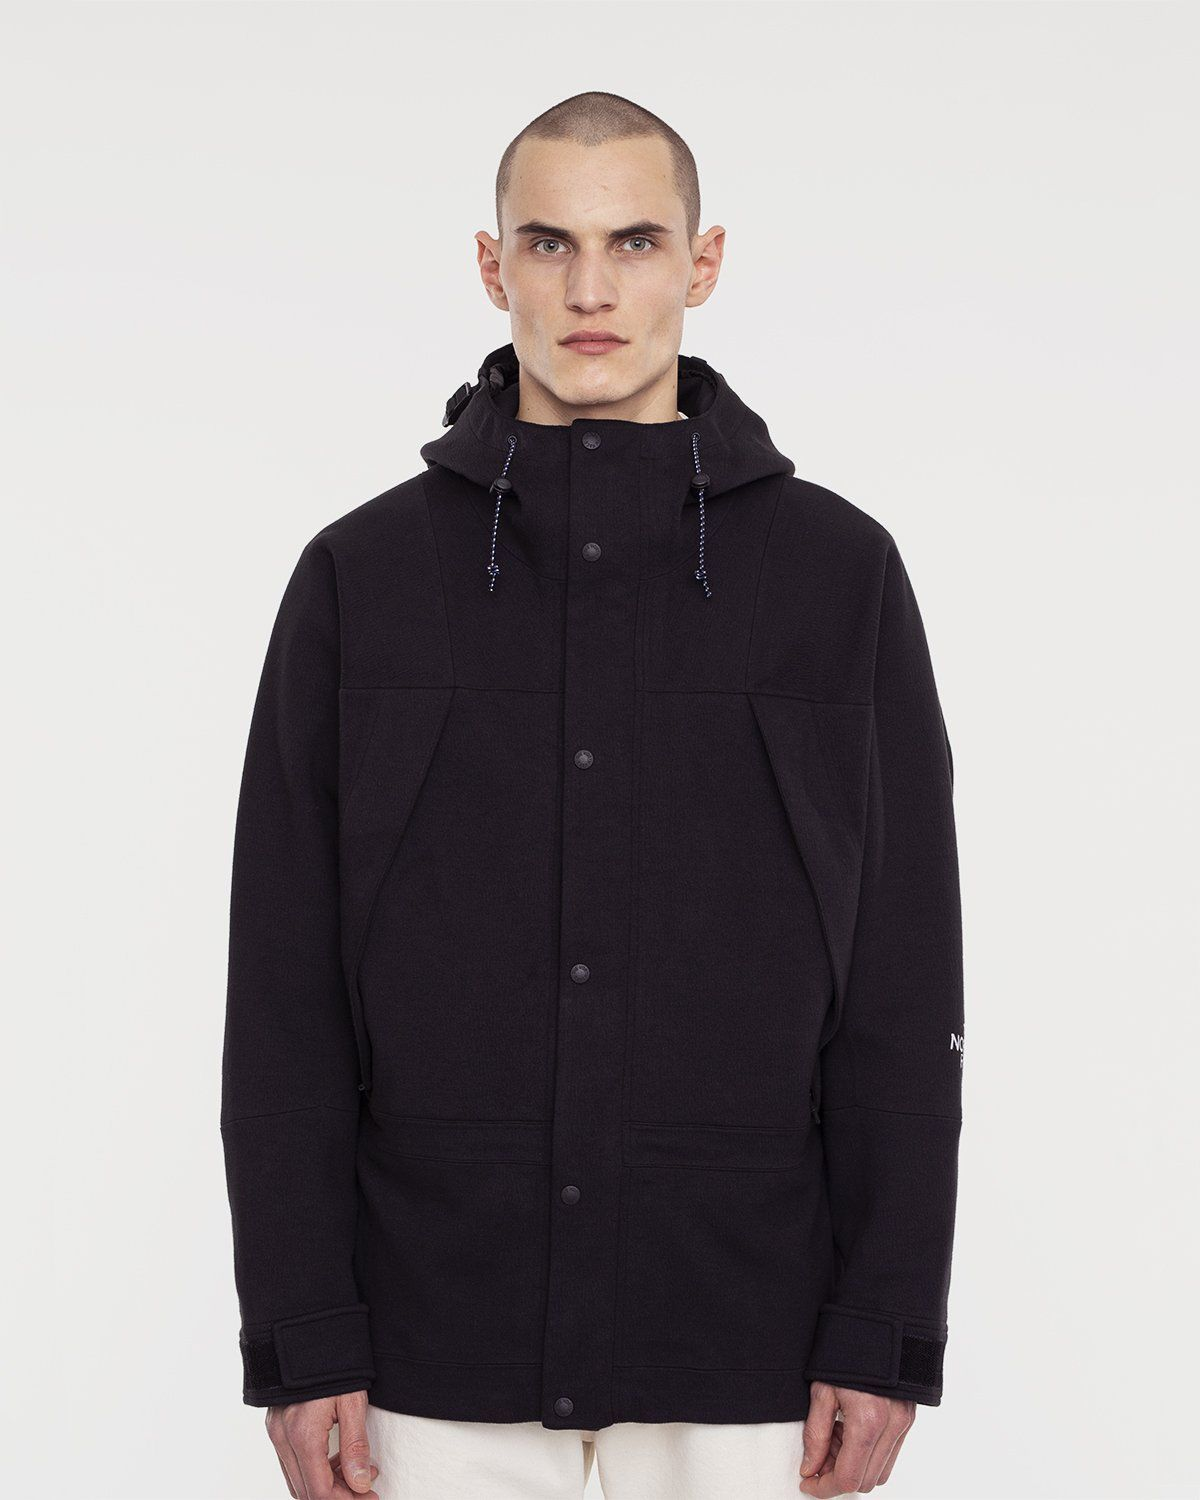 The North Face Black Series — Spacer Knit Mountain Light Jacket Black - Image 2